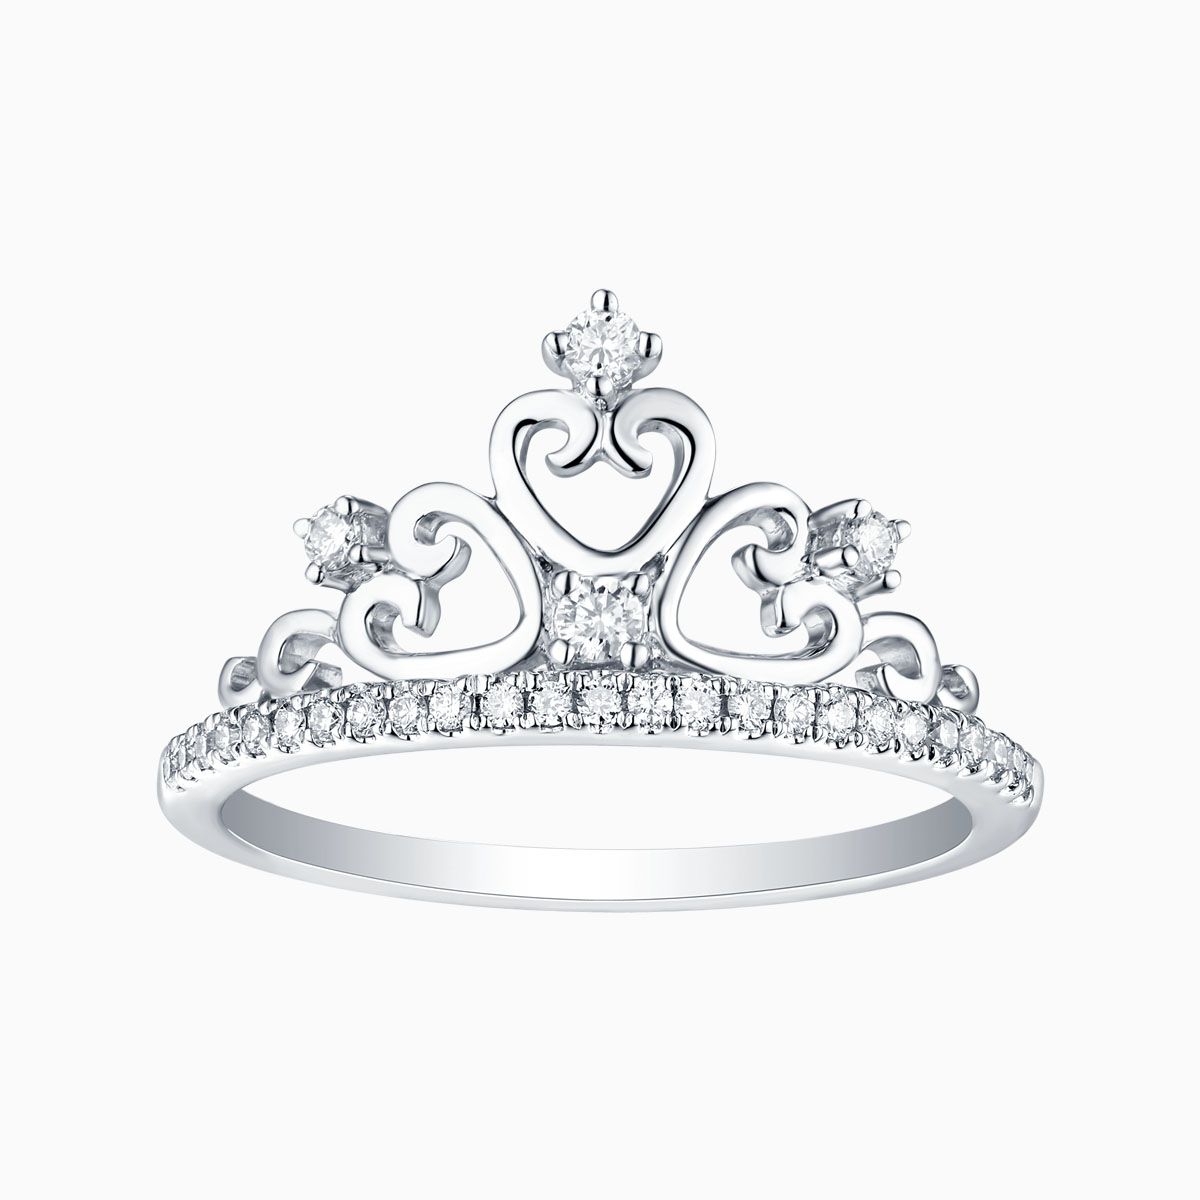 R26173WHT- 14K White Gold Diamond Ring, 0.19 TCW